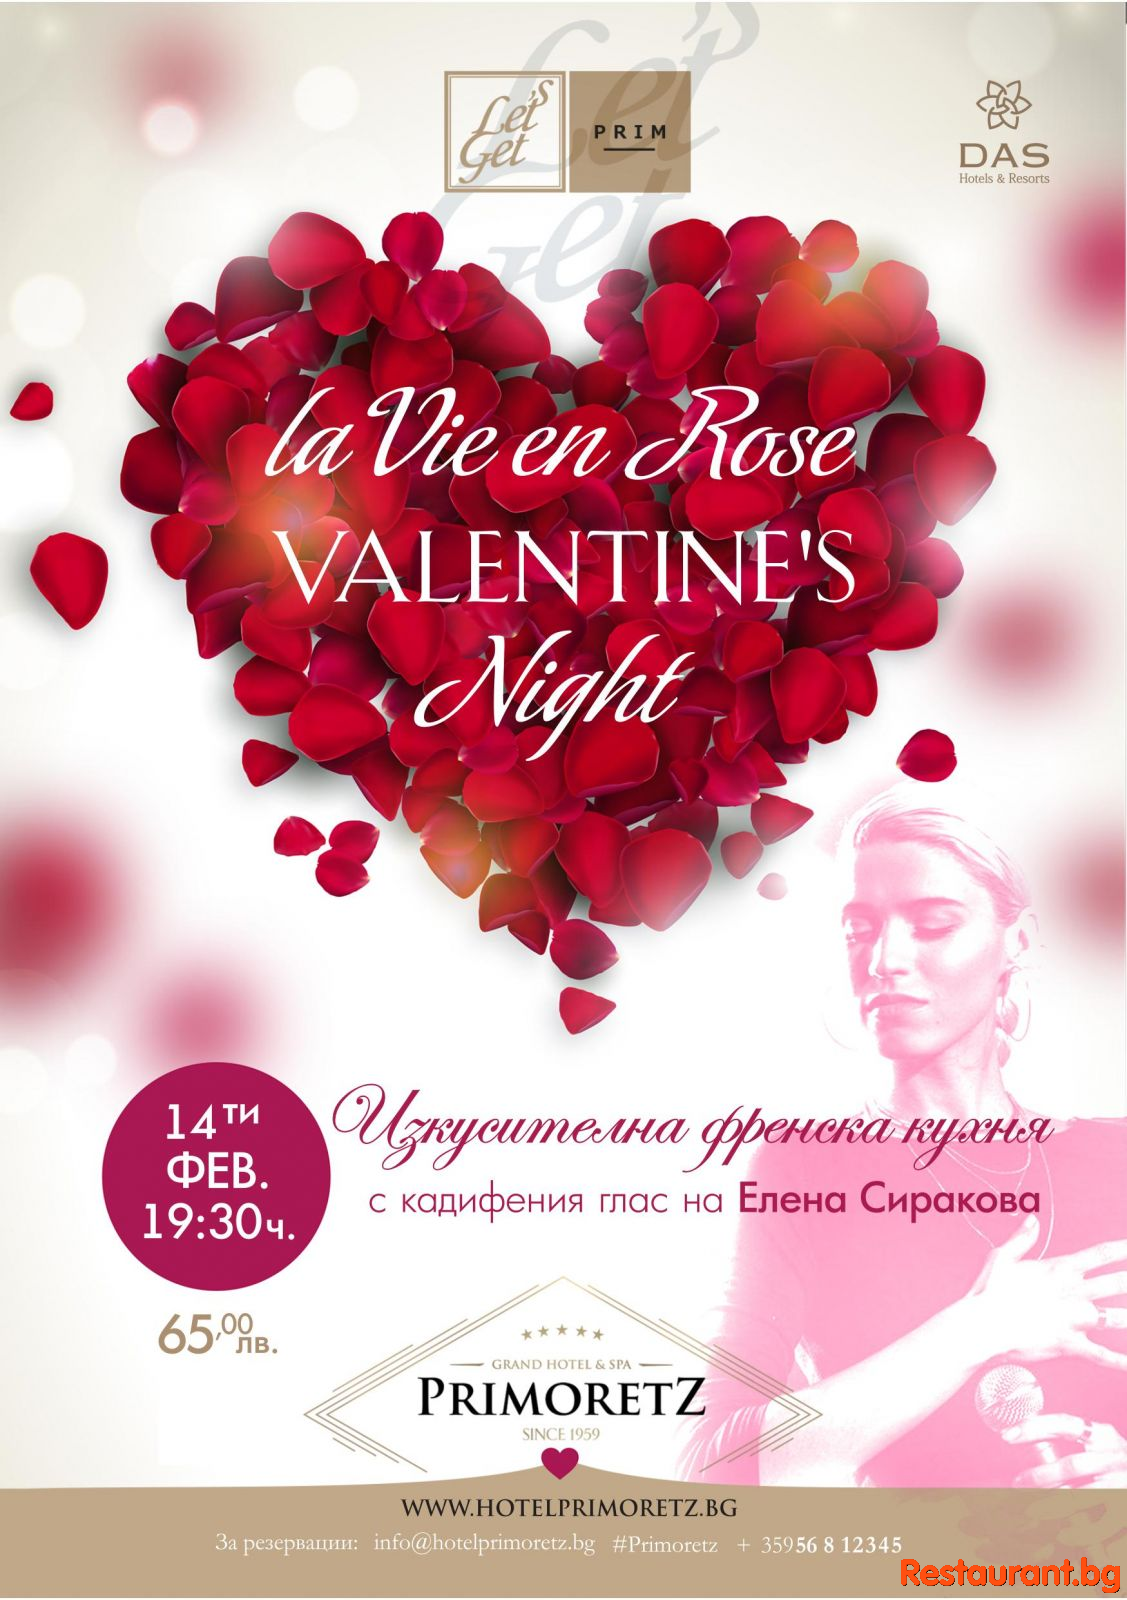 Let's Get PRIM: La Vie En Rose Valentine's Night !